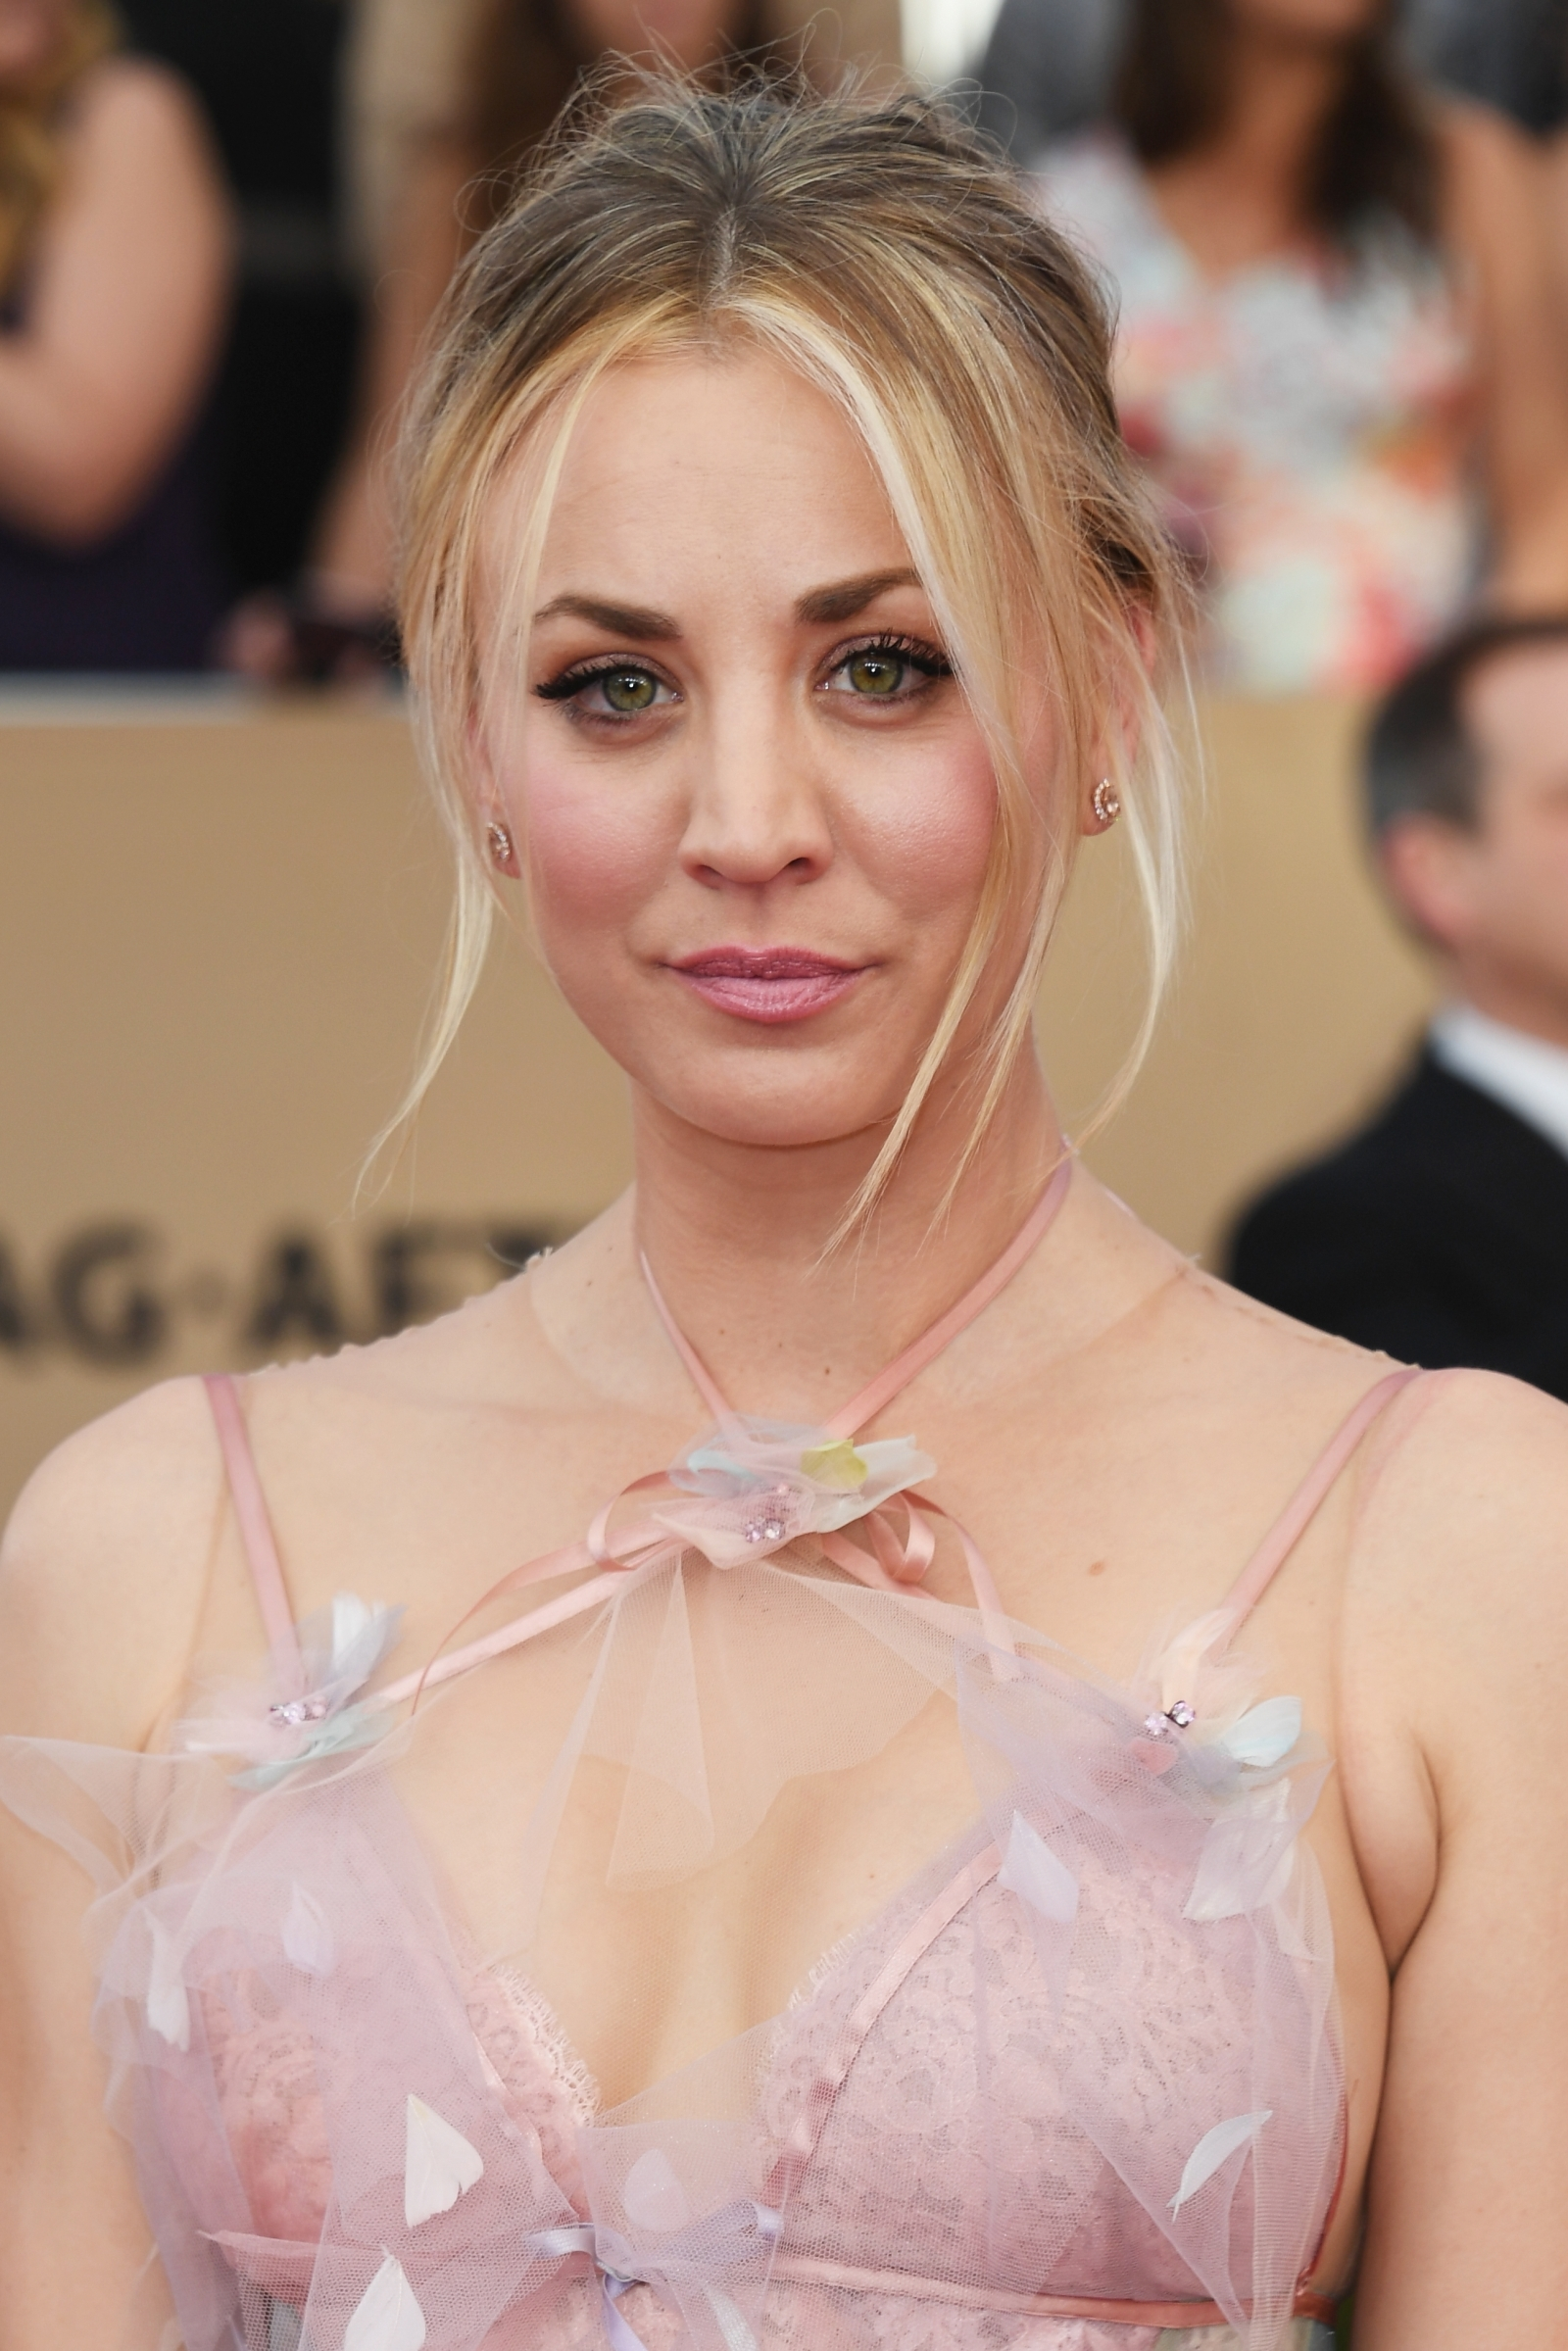 Images Kaley Cuoco nudes (75 photo), Topless, Cleavage, Instagram, see through 2017